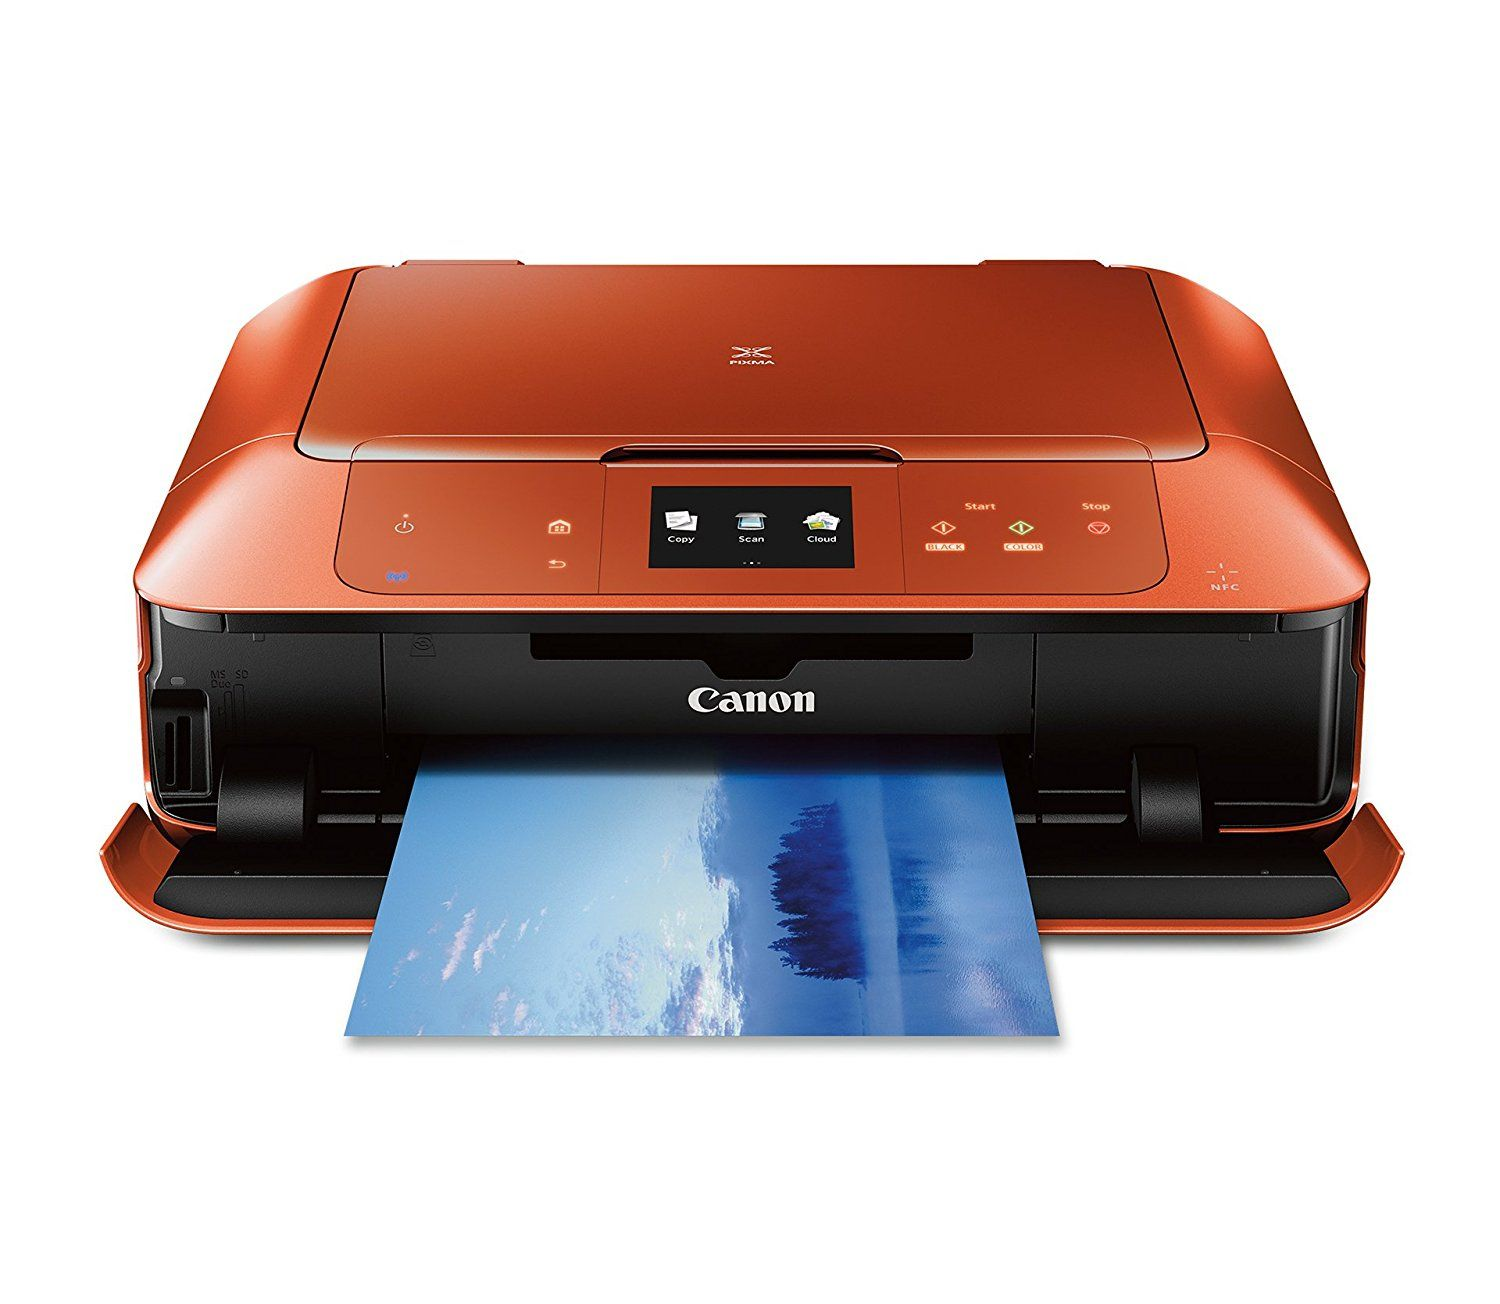 CANON MG7520 Wireless Color Cloud Printer with Scanner and